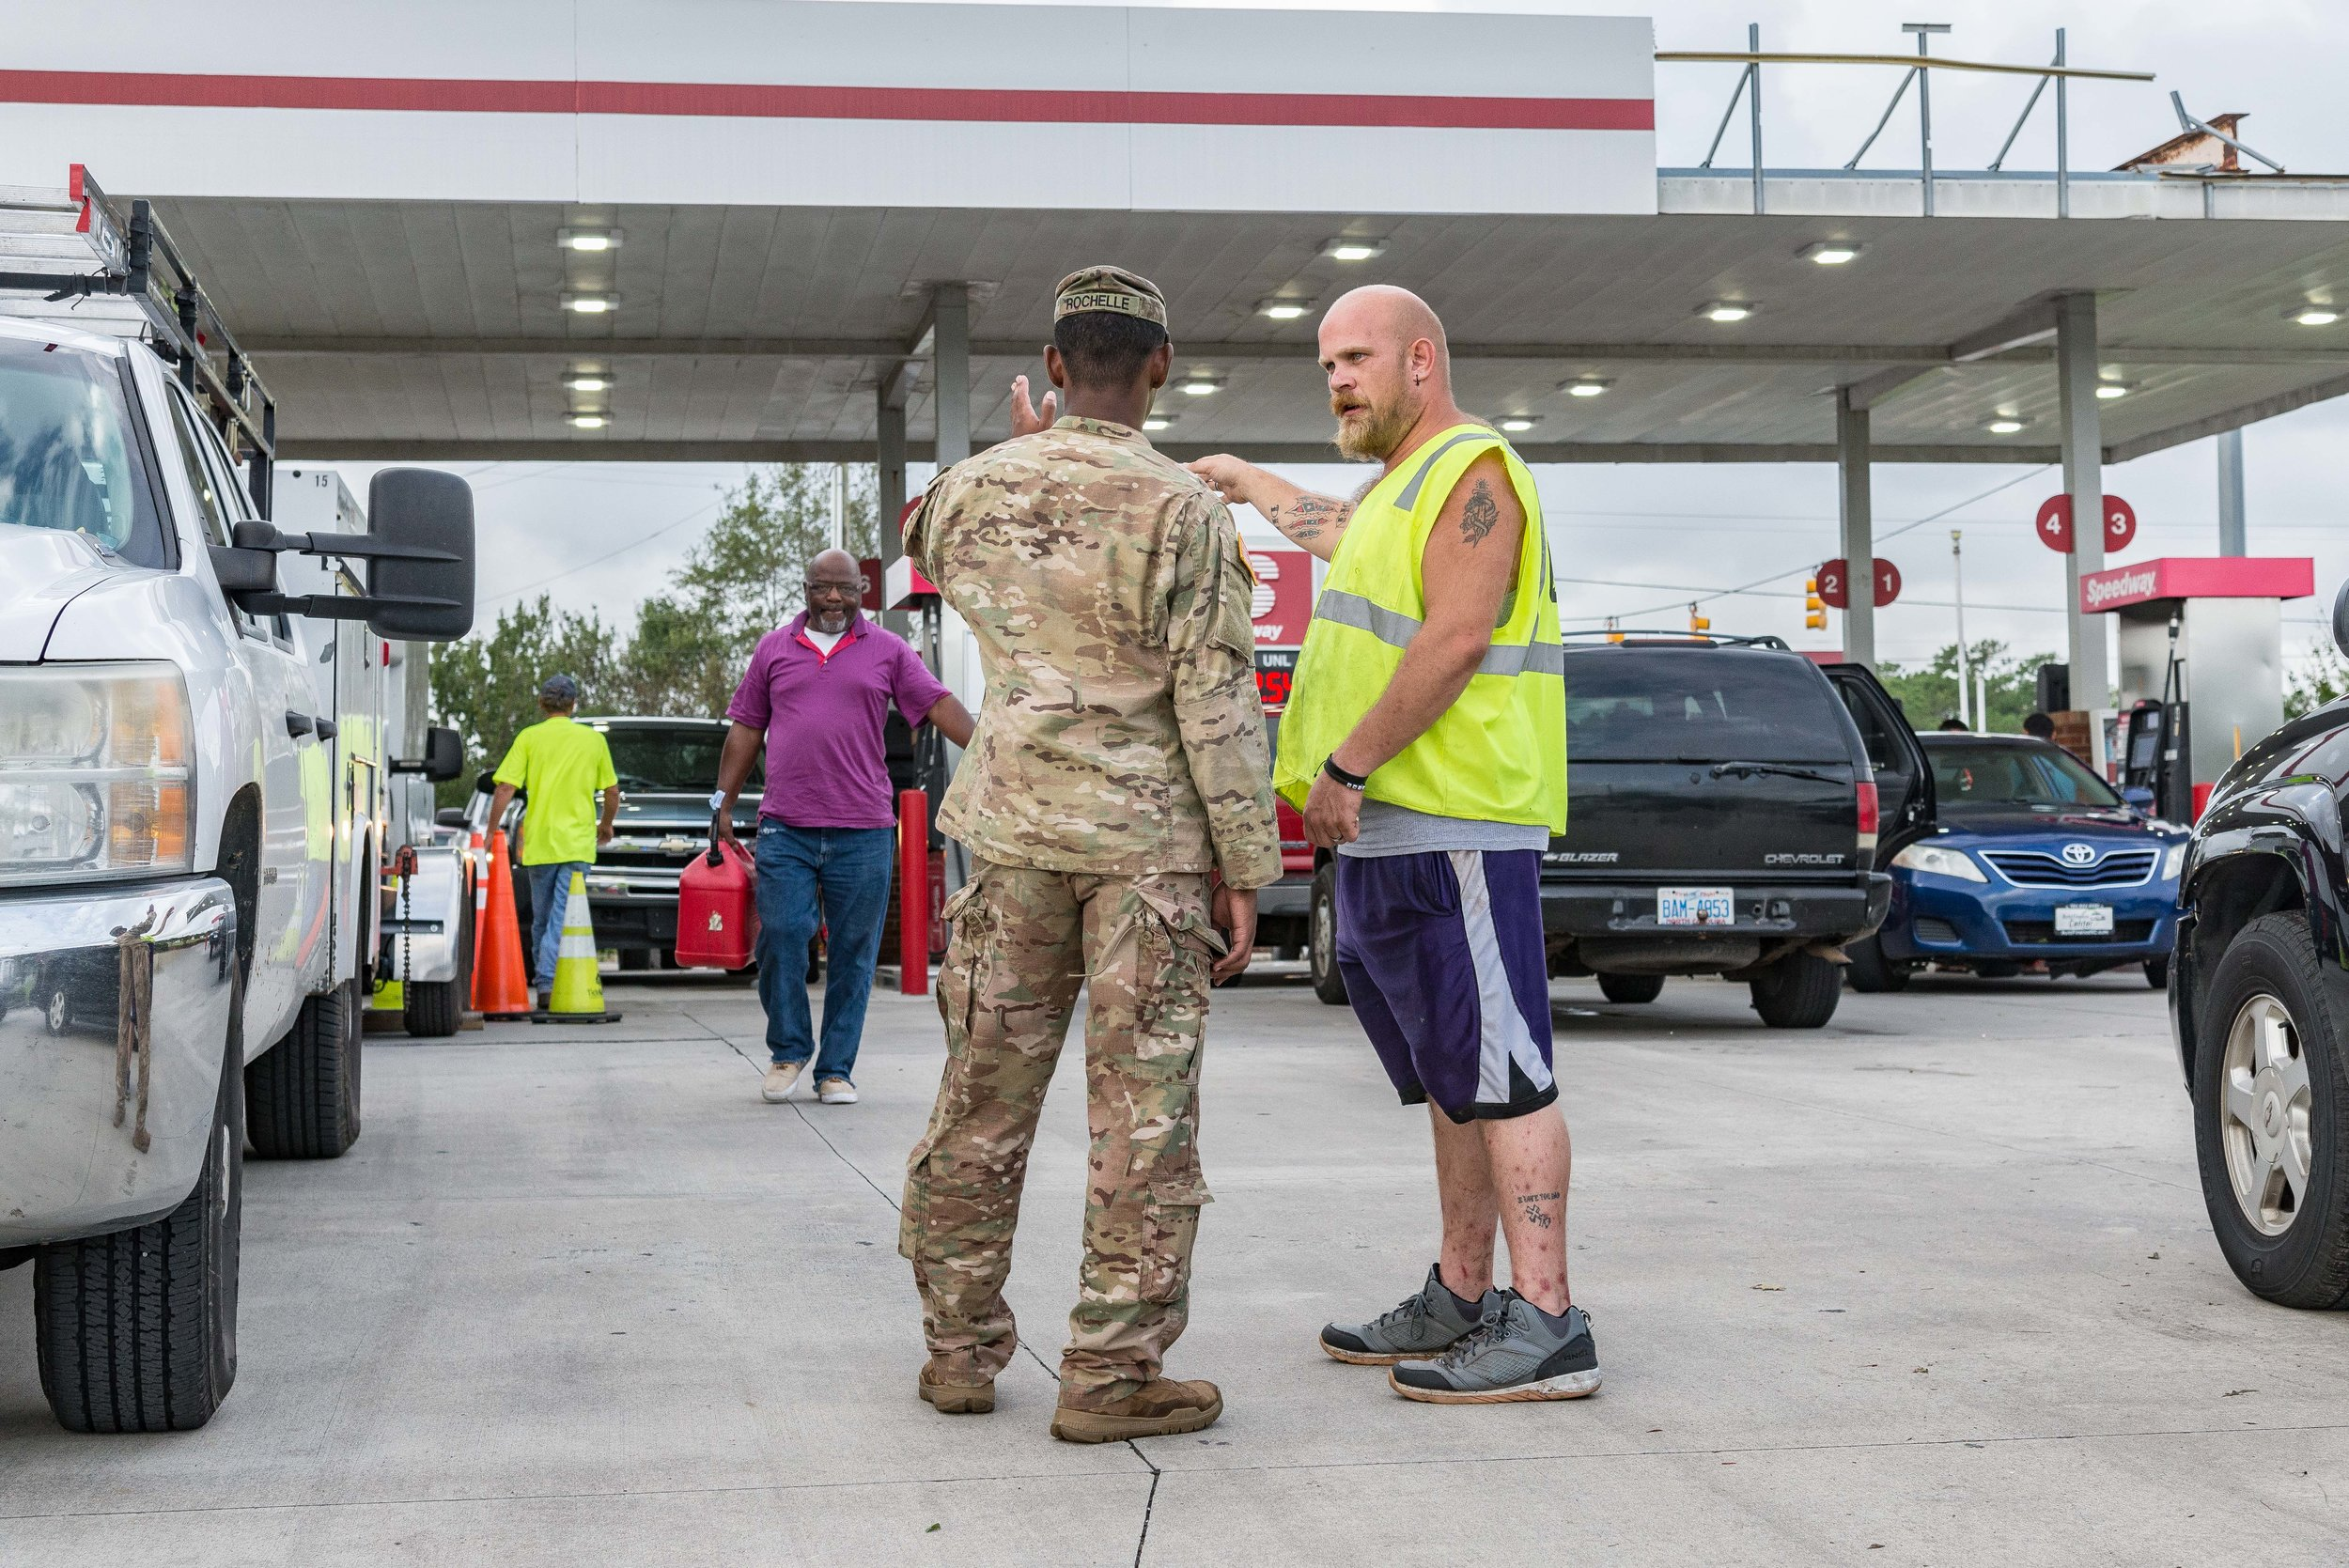 September 16, 2018, Newport, NC- Local and US Military police were on guard and organizing distribution of fuel at Speedway fueling station on US-70 at Roberts Rd.